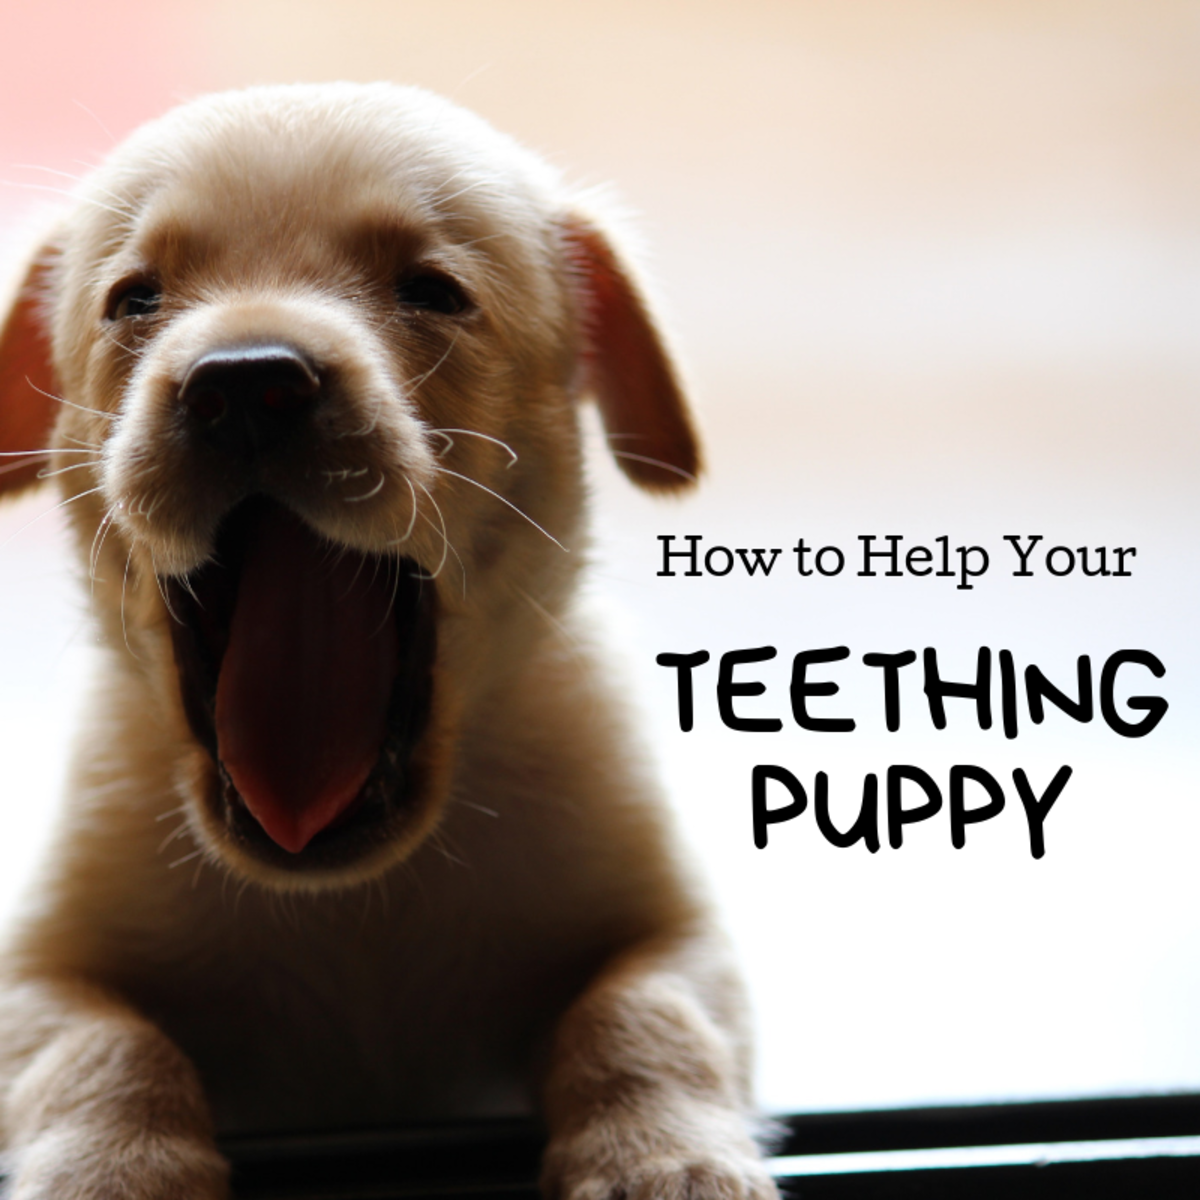 The Puppy Teething Process: Remedies, Complications, and More